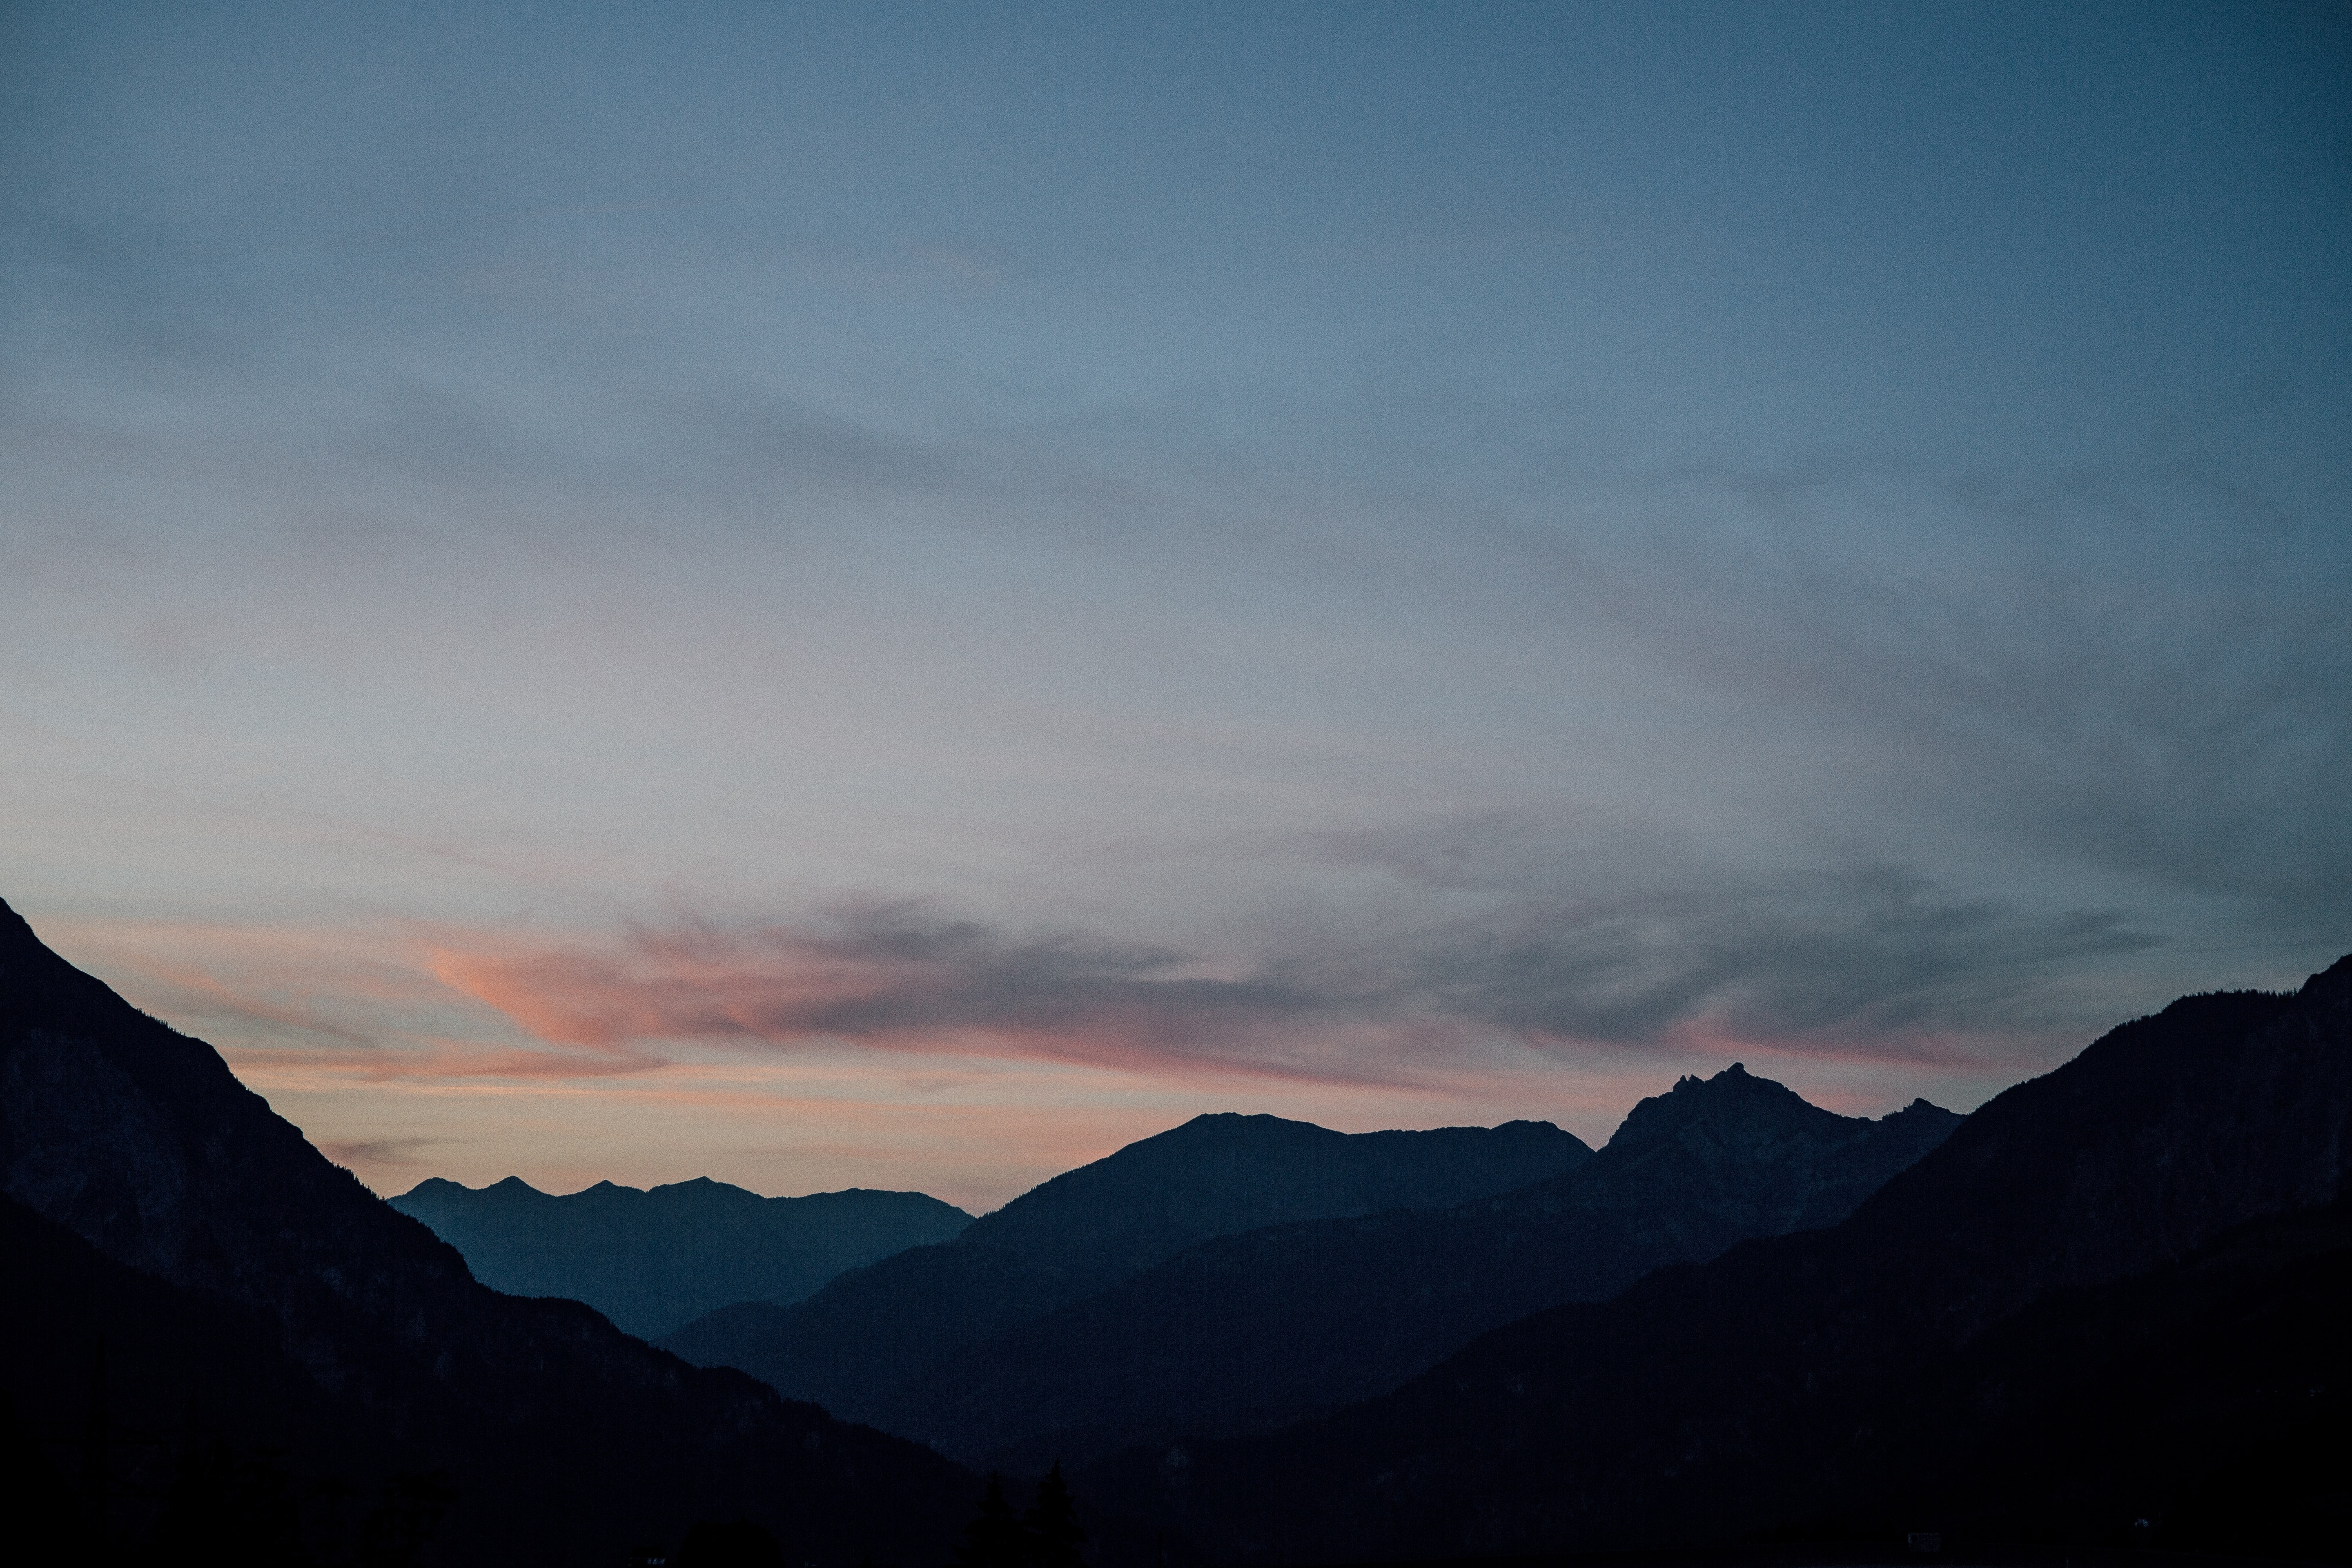 silhouette of mountain hills